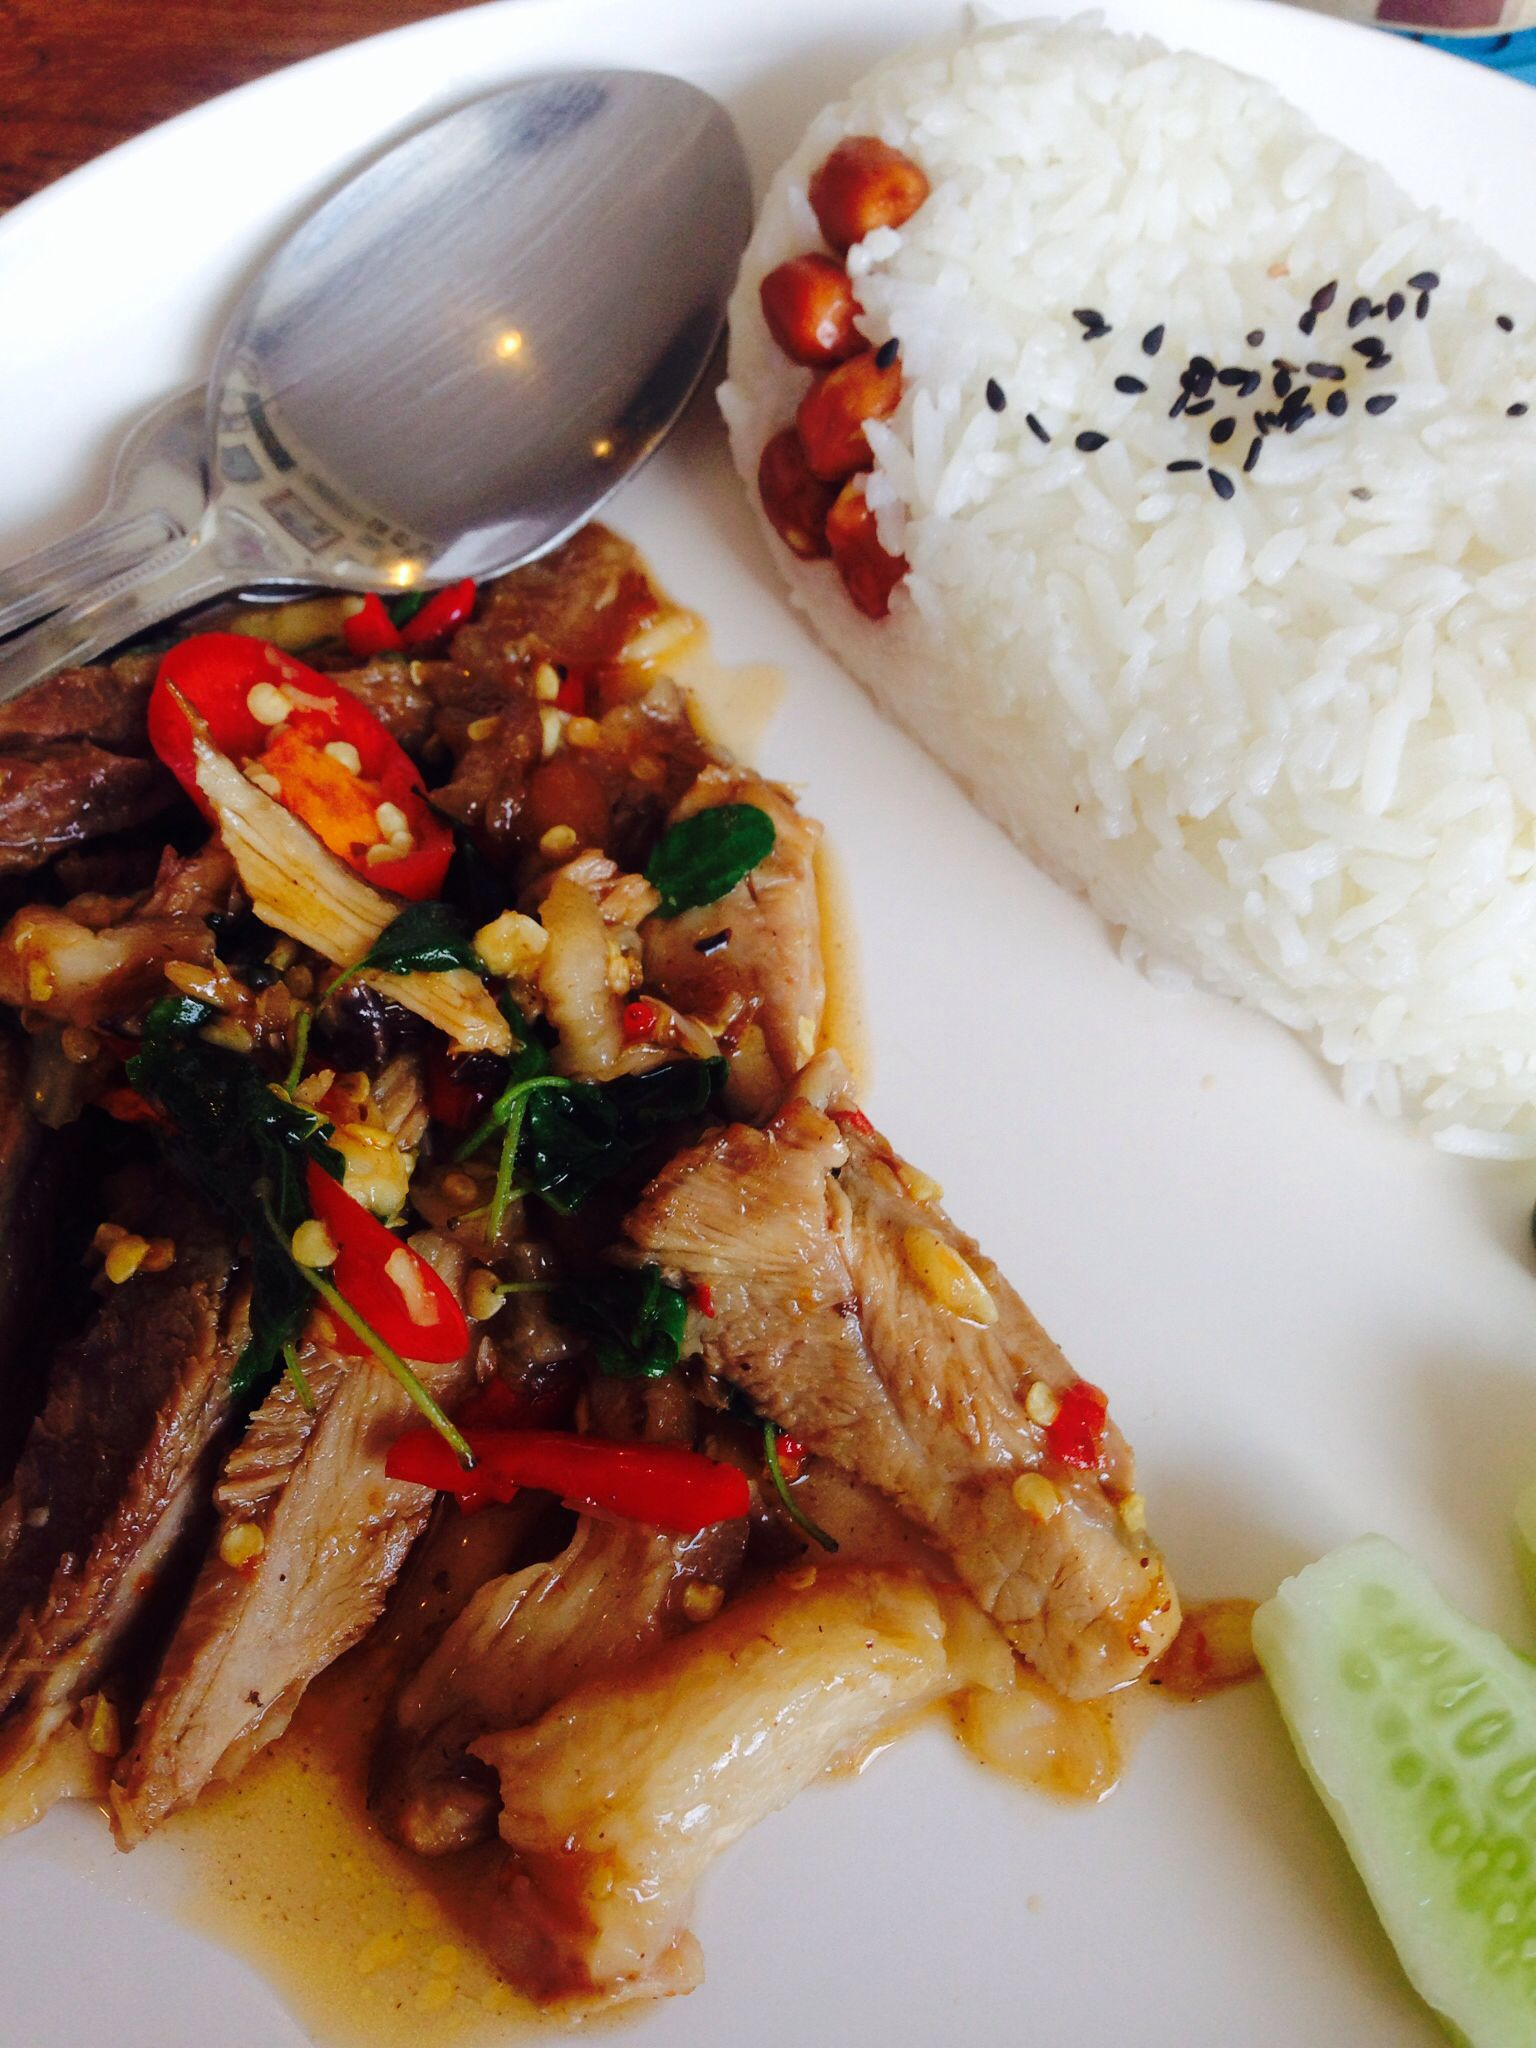 Belly pork stir-fried with Thai Hot Basil - Pad Kra Paow Ka Moo ^^